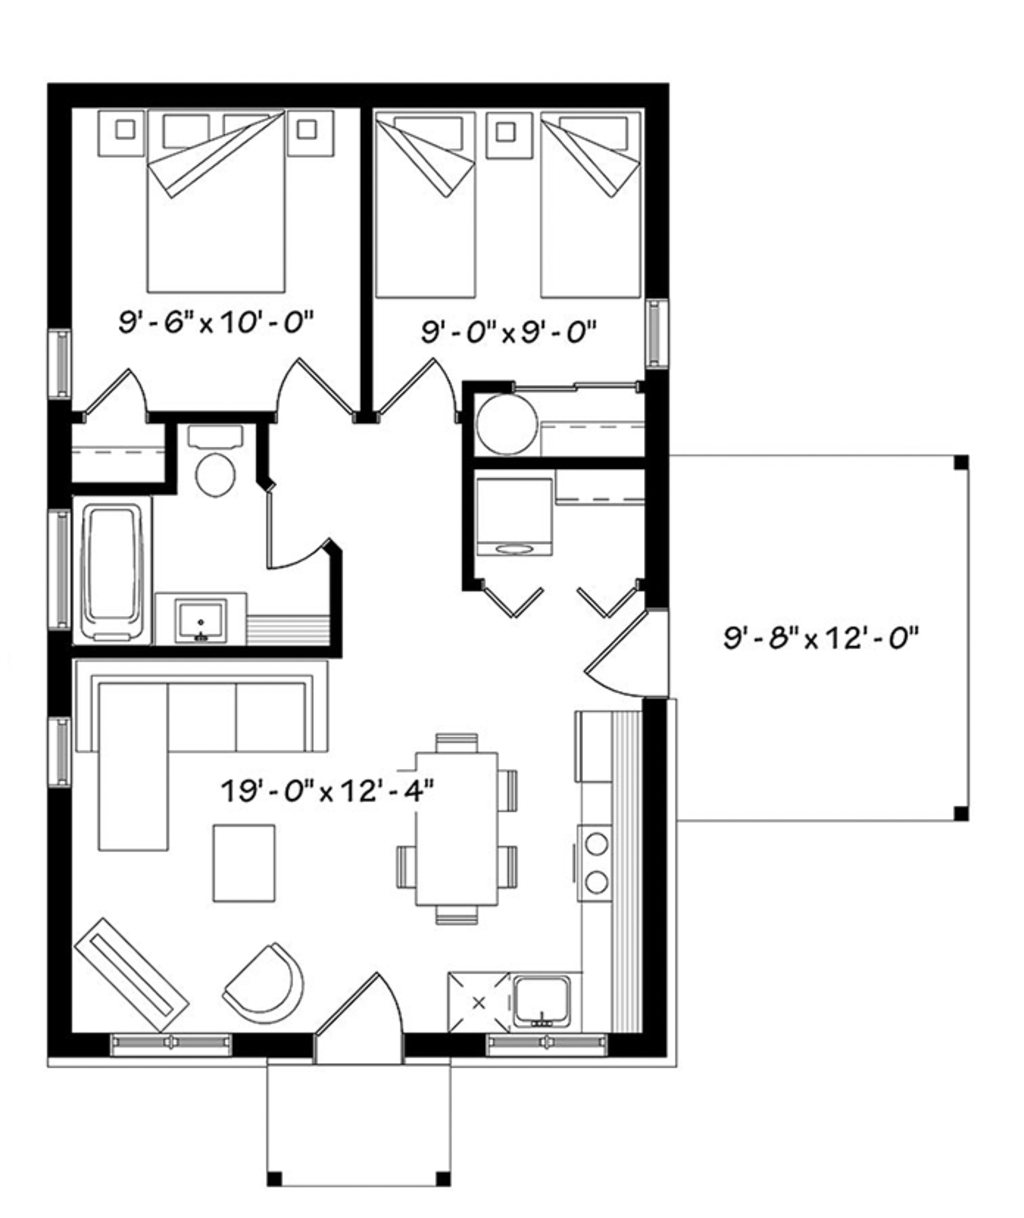 Ranch style house plan 2 beds 1 baths 643 sq ft plan 23 for Main floor